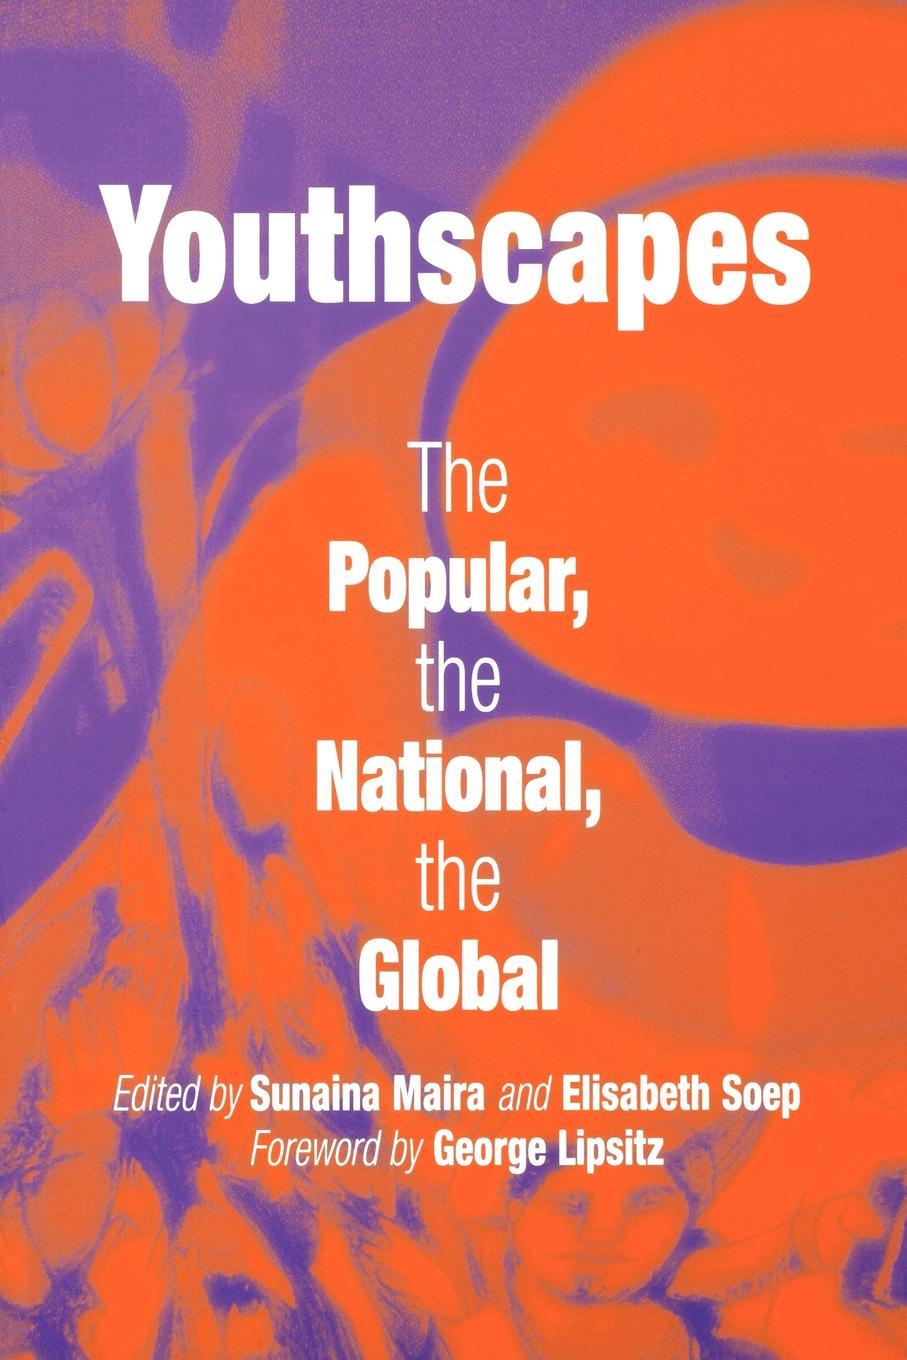 Youthscapes The Popular,  the National,  the Global